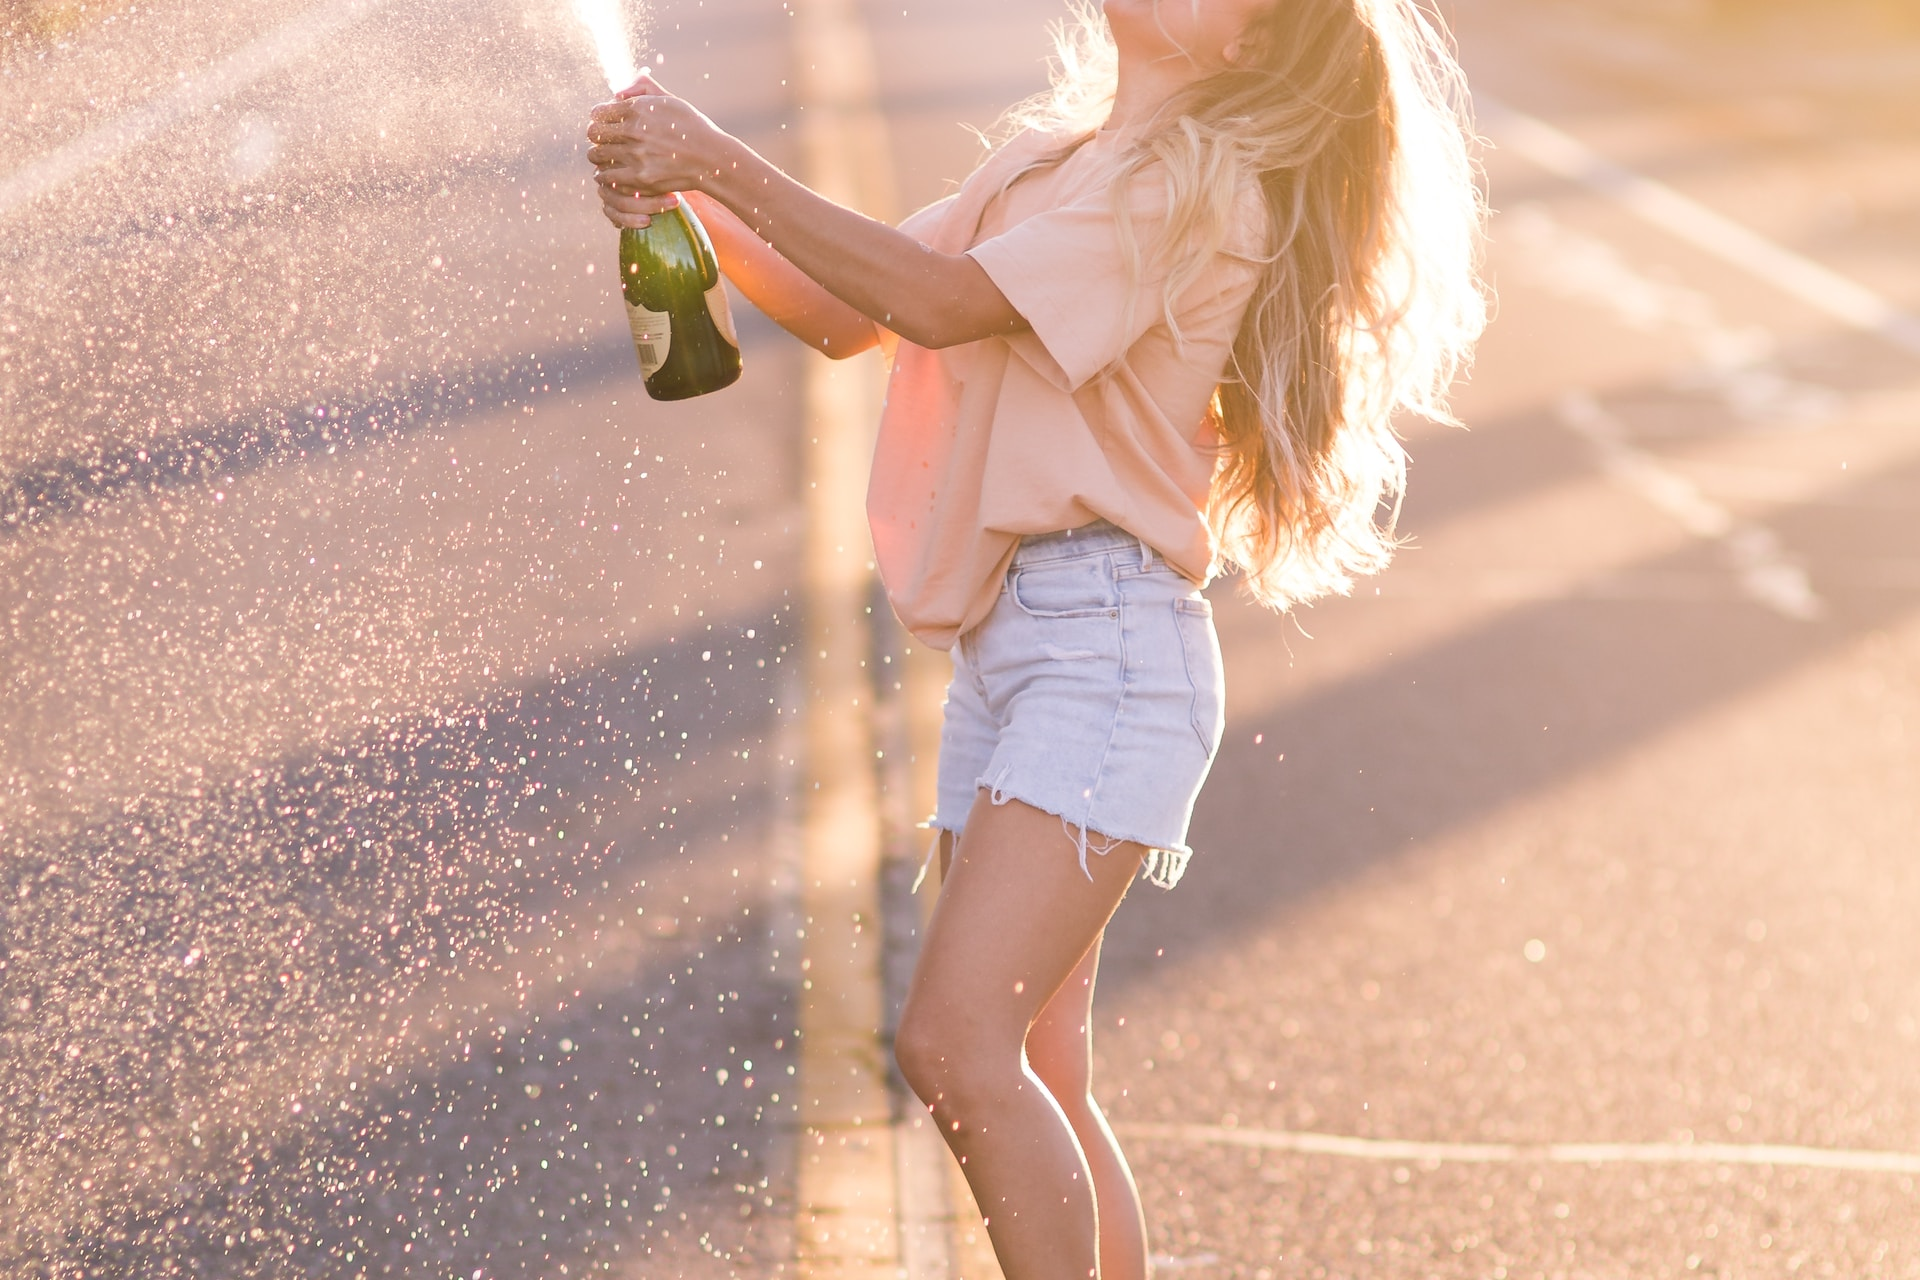 woman in white shirt and blue denim shorts holding green bottle standing on road during daytime